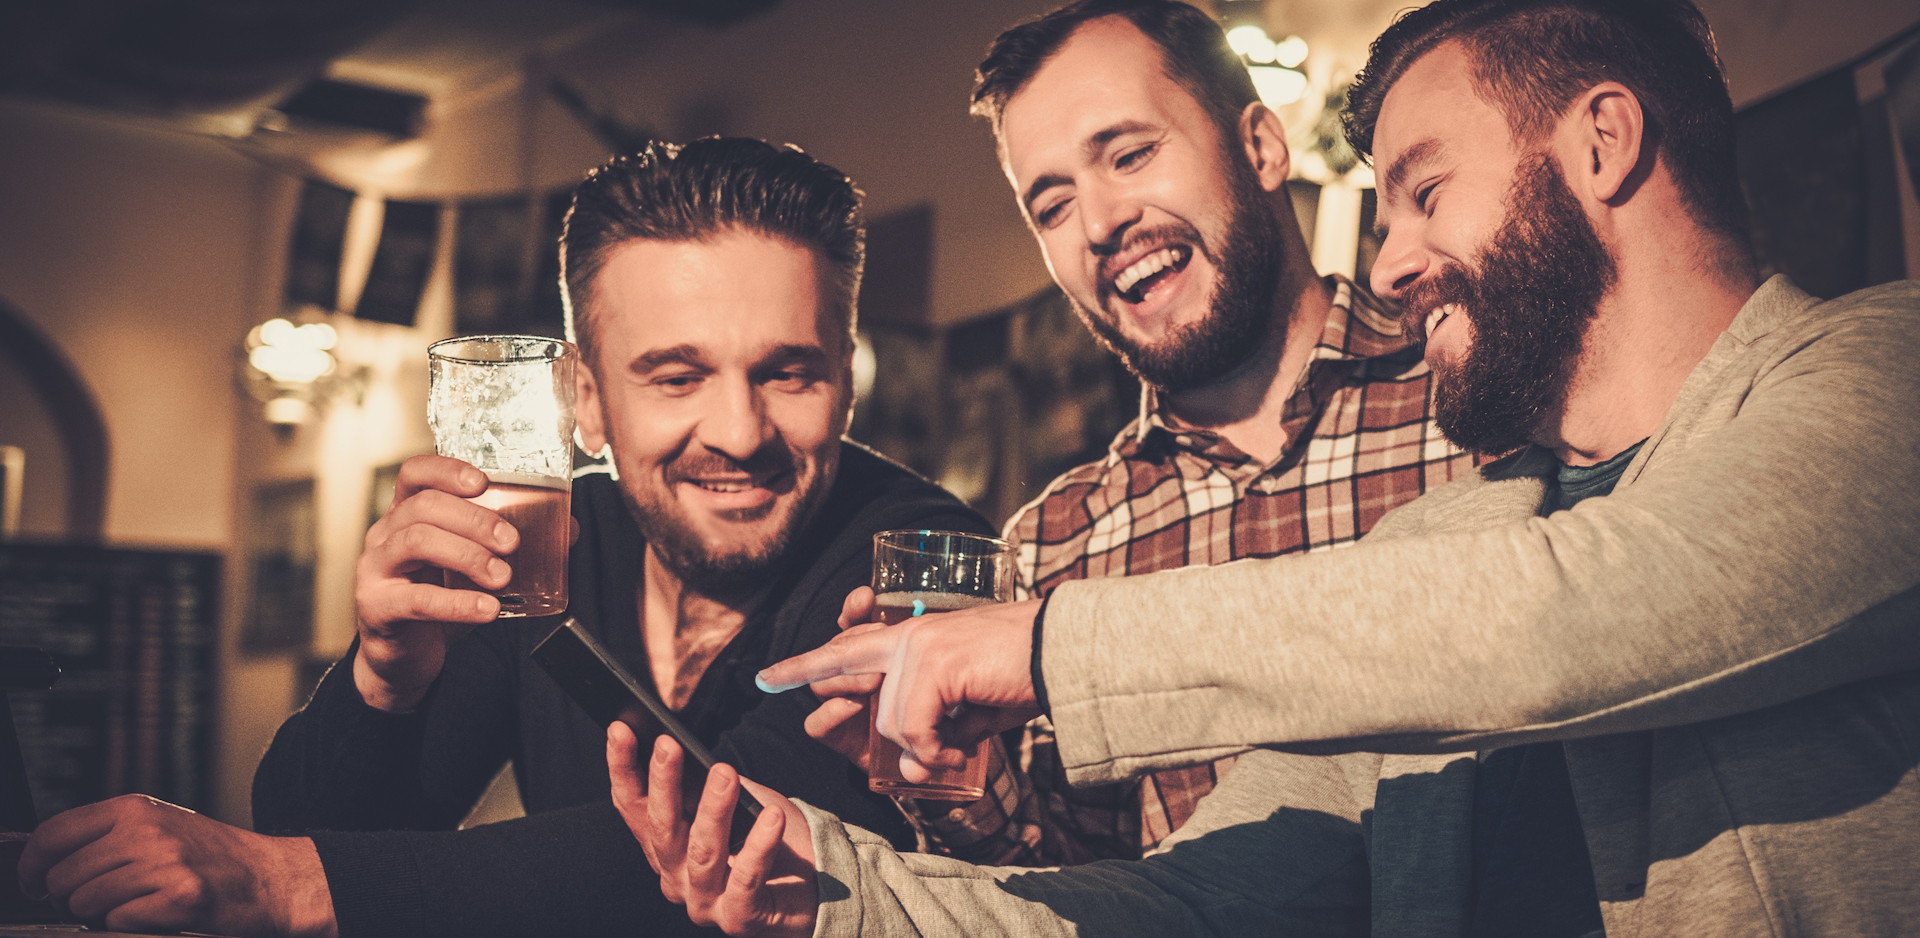 A bunch of guys hanging out having a good time and drinking beer